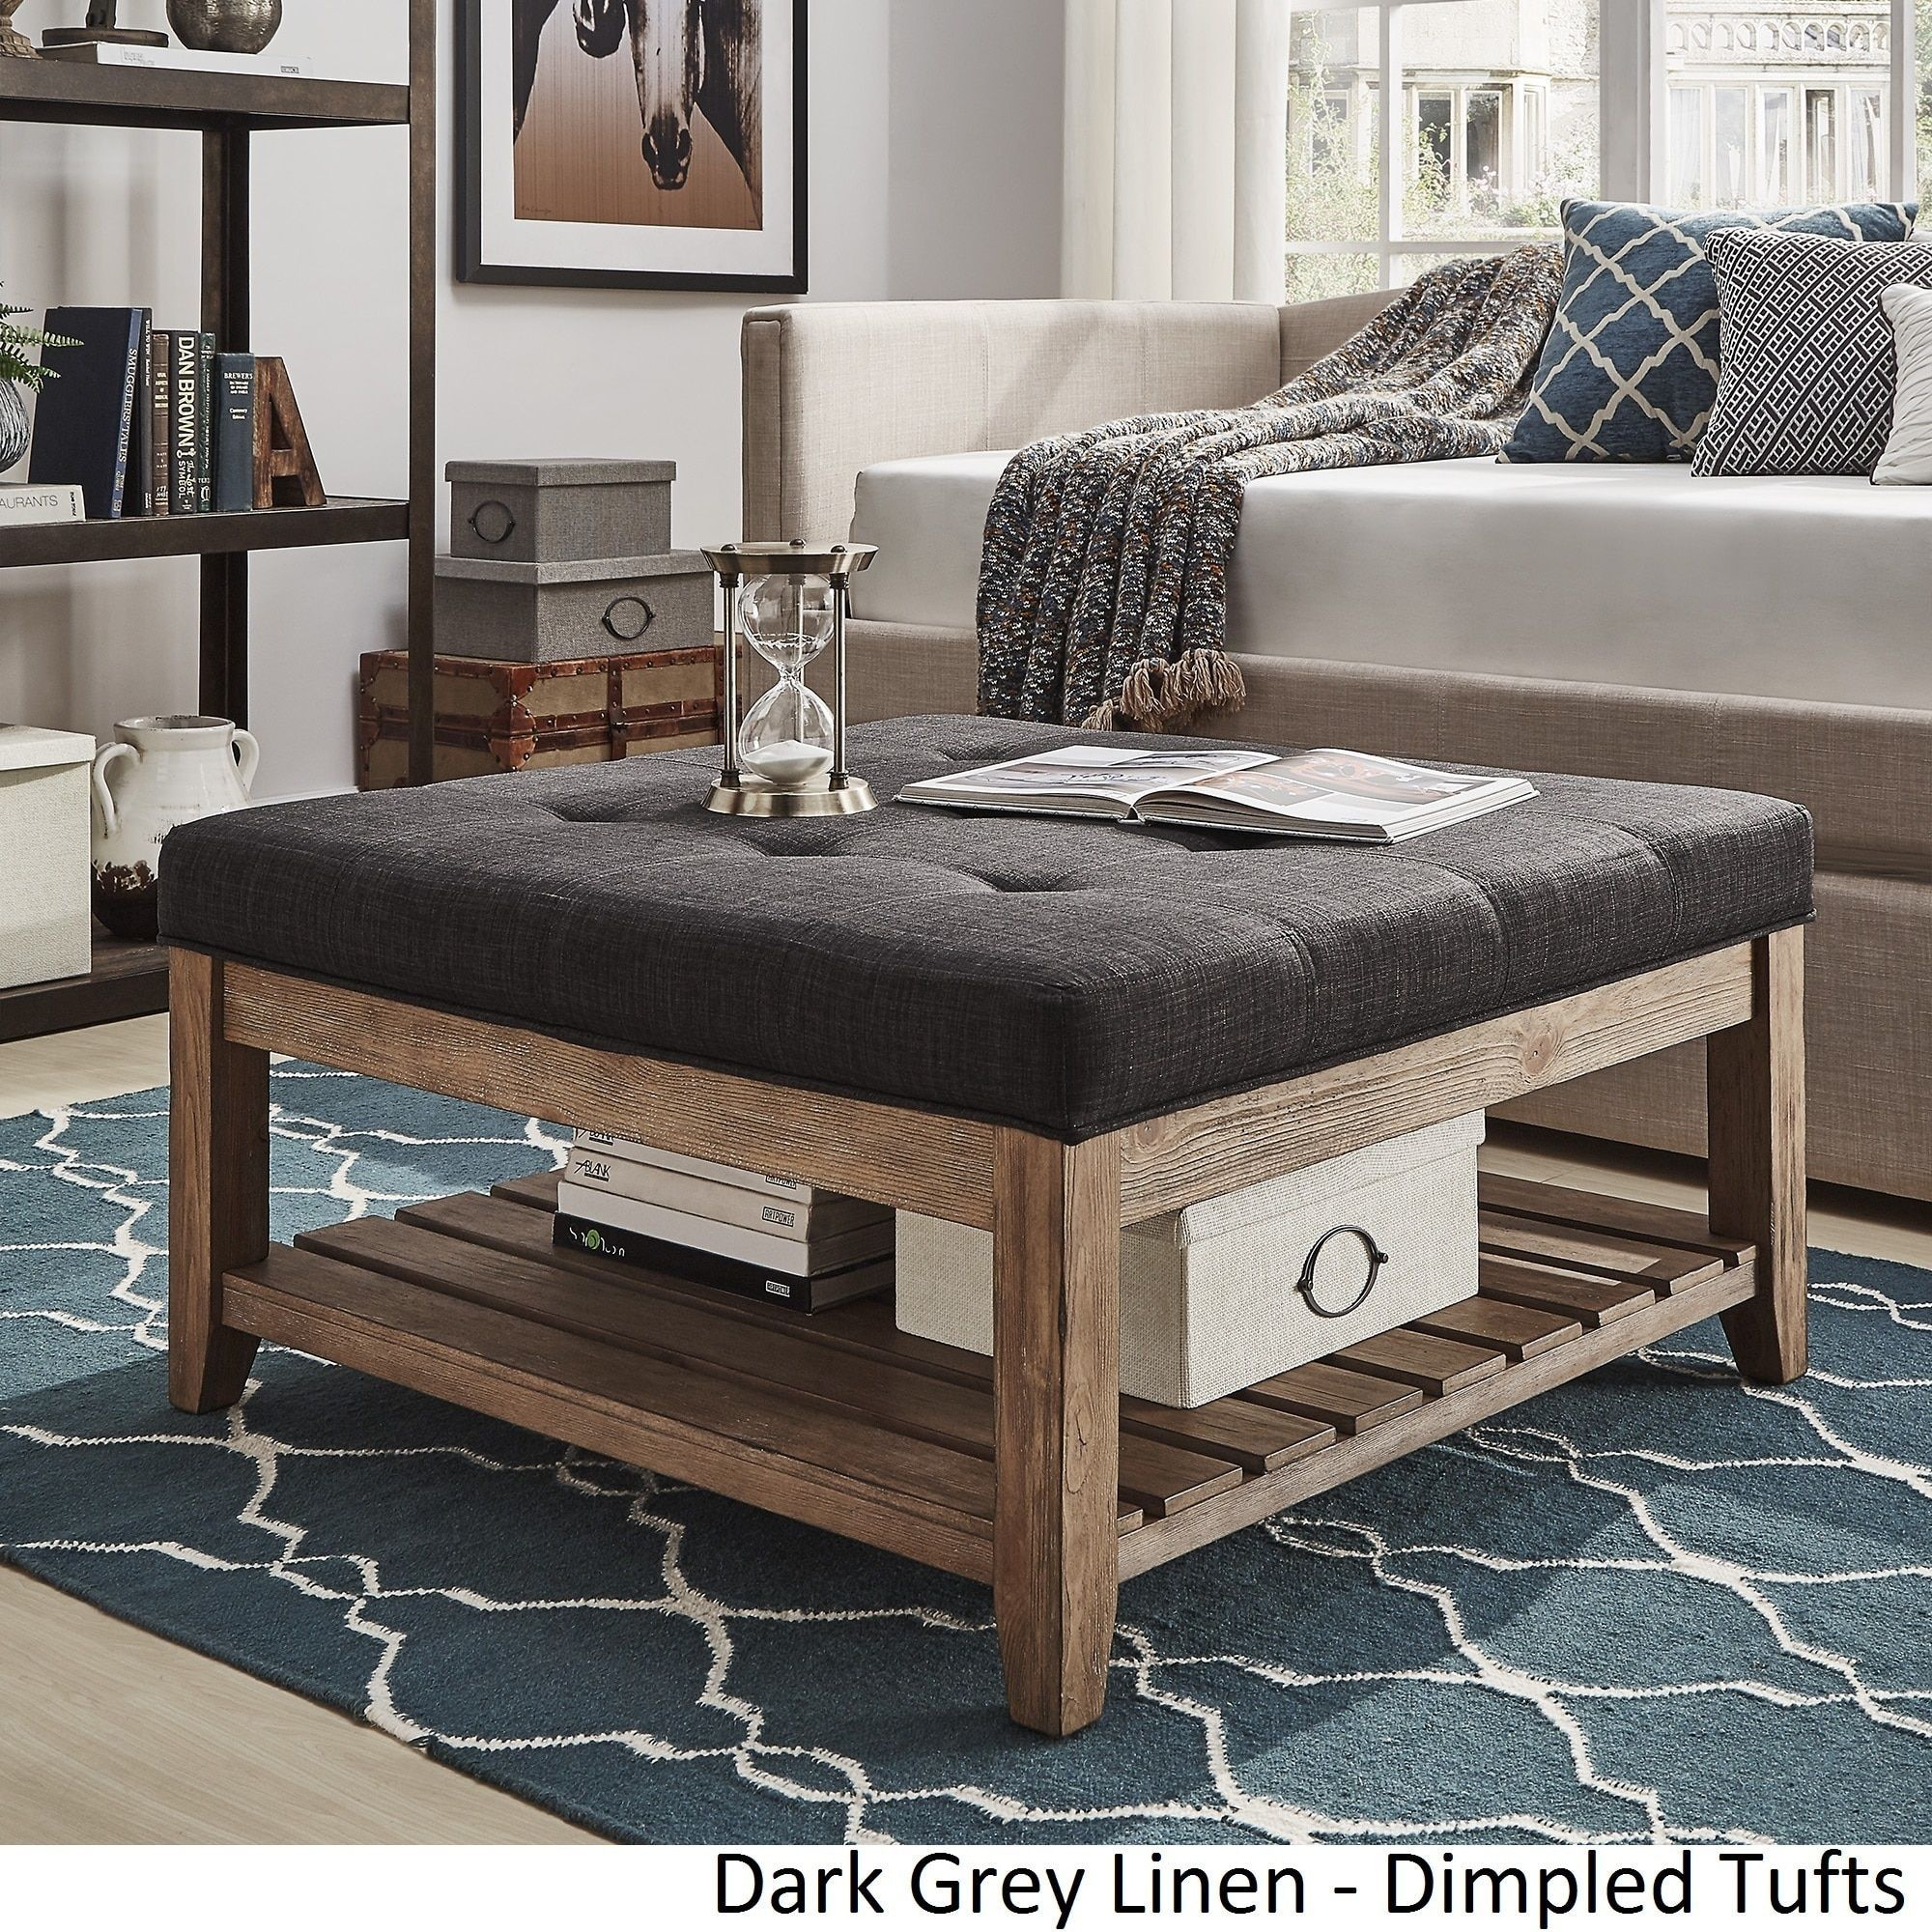 Lennon Pine Planked Storage Ottoman Coffee Table by iNSPIRE Q Artisan by  iNSPIRE Q